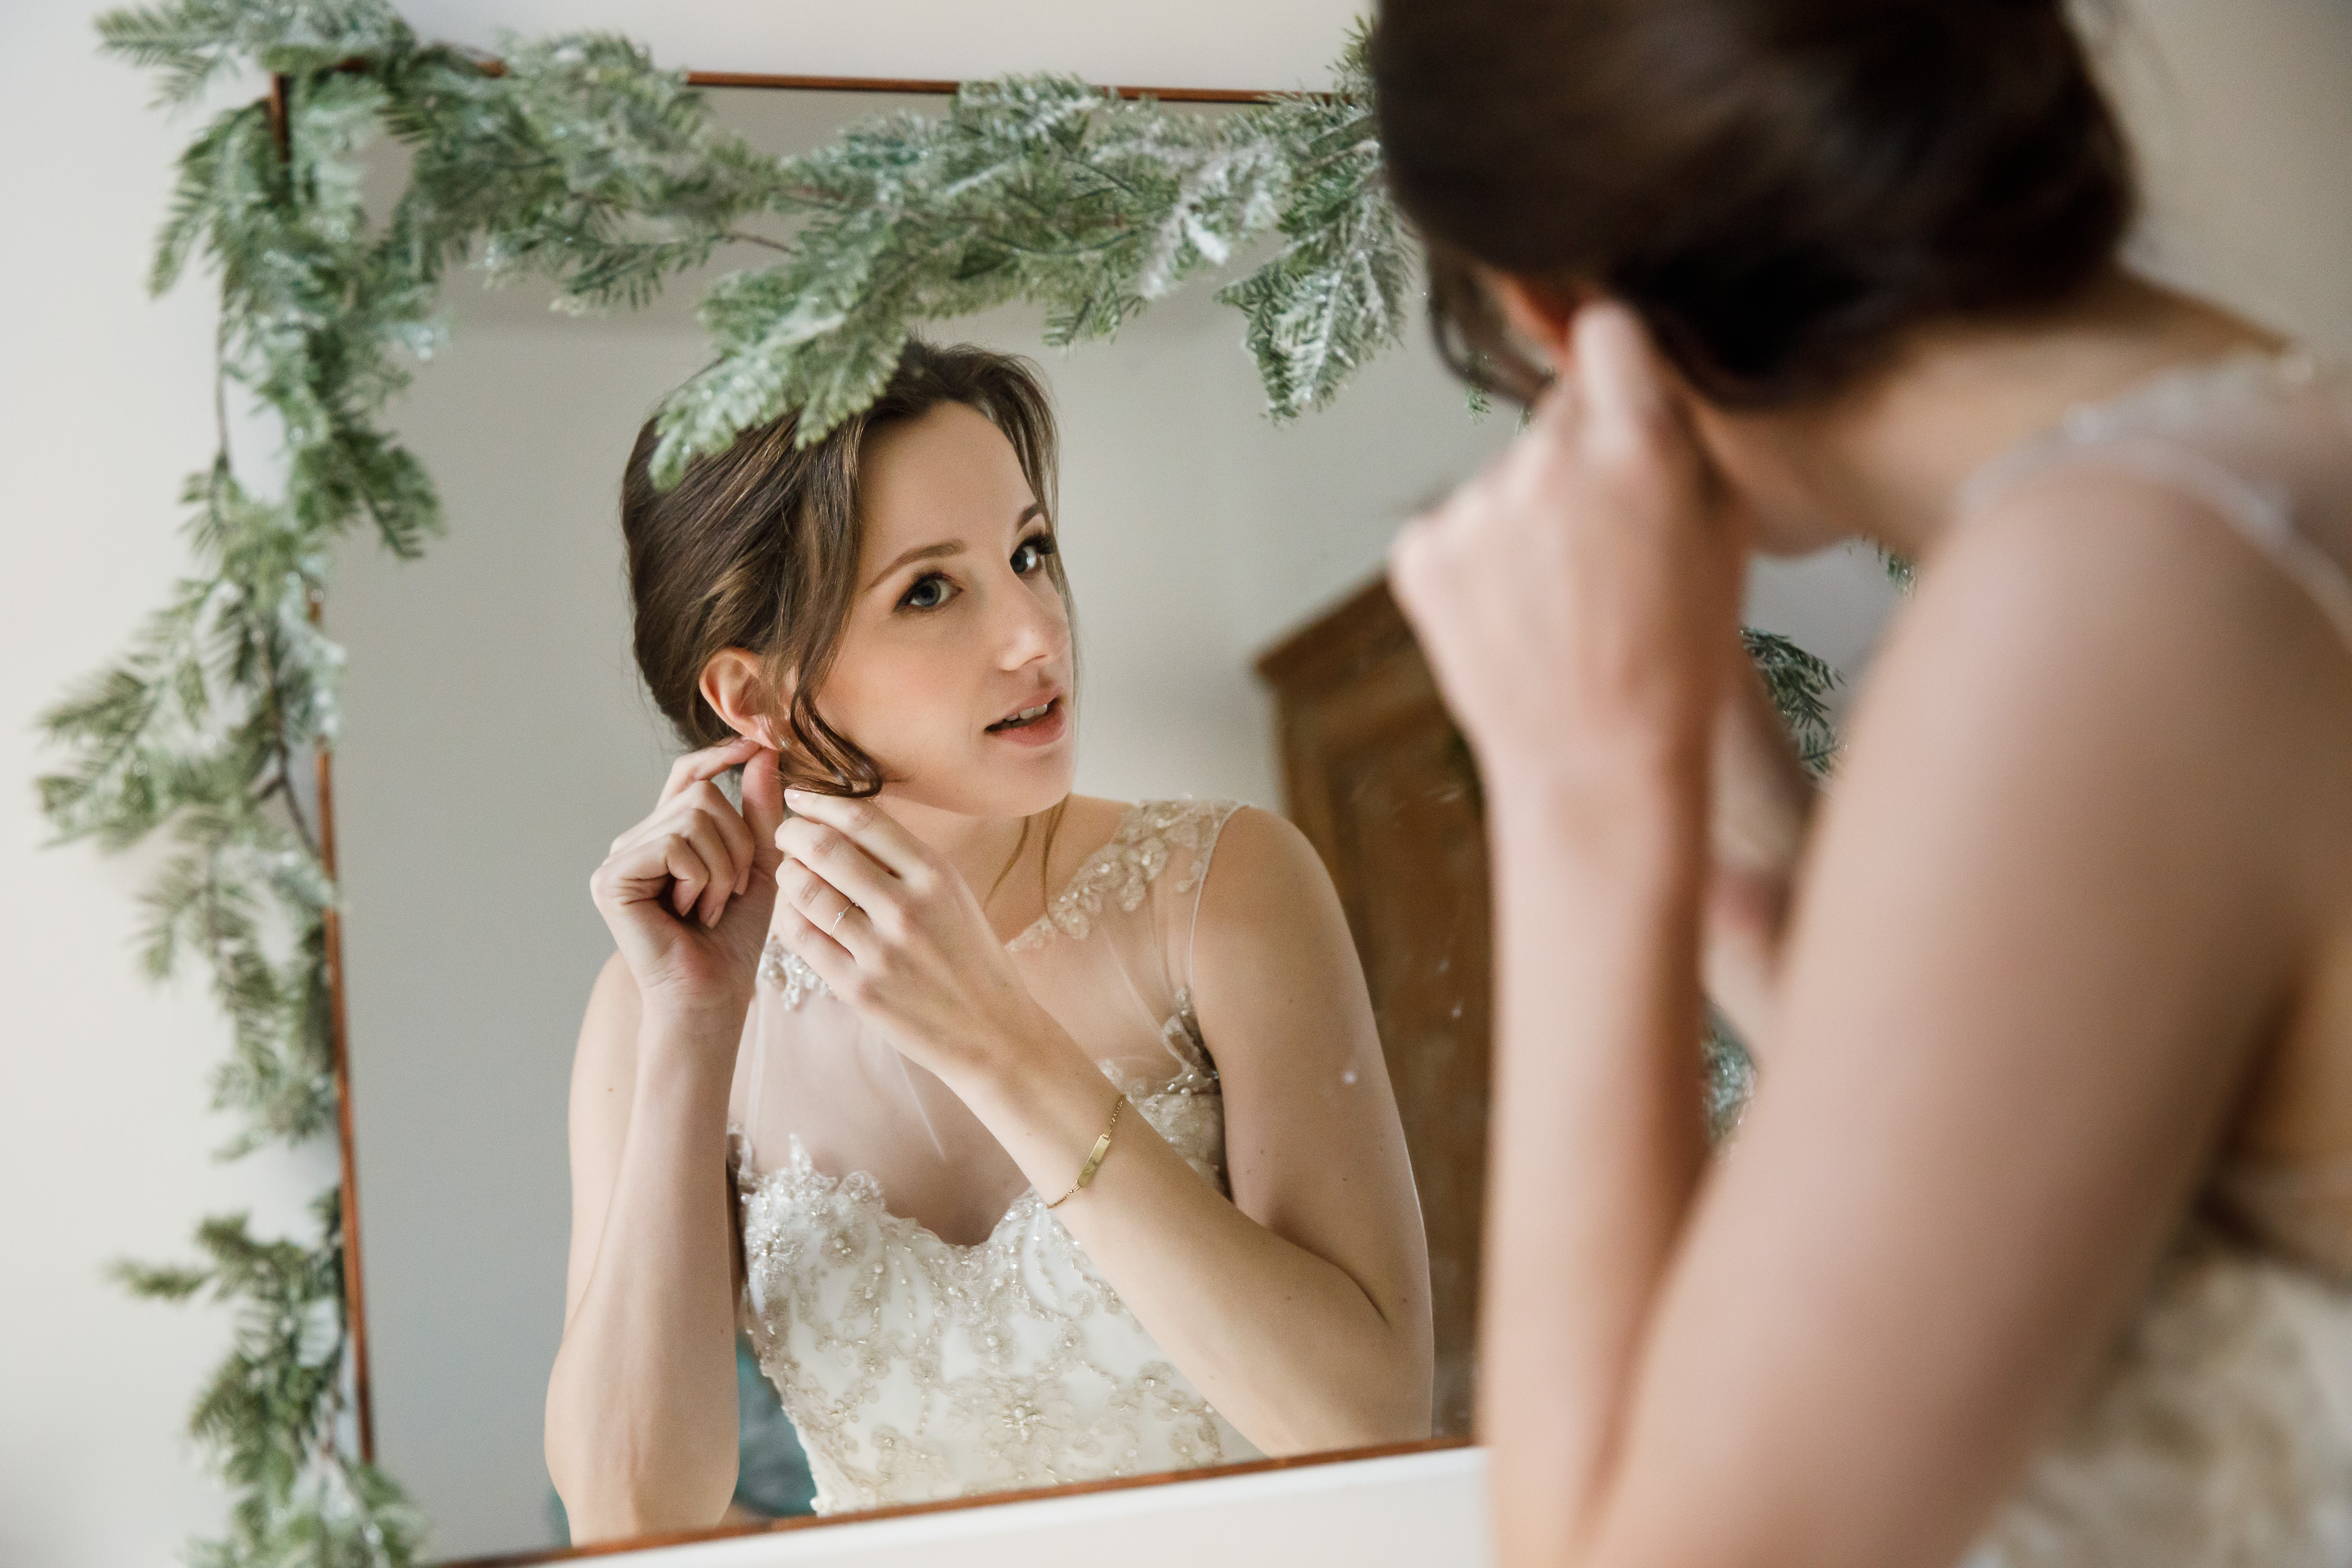 Engaged, trouwbeurs, Chantelle Alyssa, visagie, makeup, make-up, bruidsmakeup, bruidskapsel, haarstyling, opsteken, bruid, trouwen, verloofd, haar en make-up, Apeldoorn, Ede, Rhenen, Utrecht, Veenendaal, Wageningen